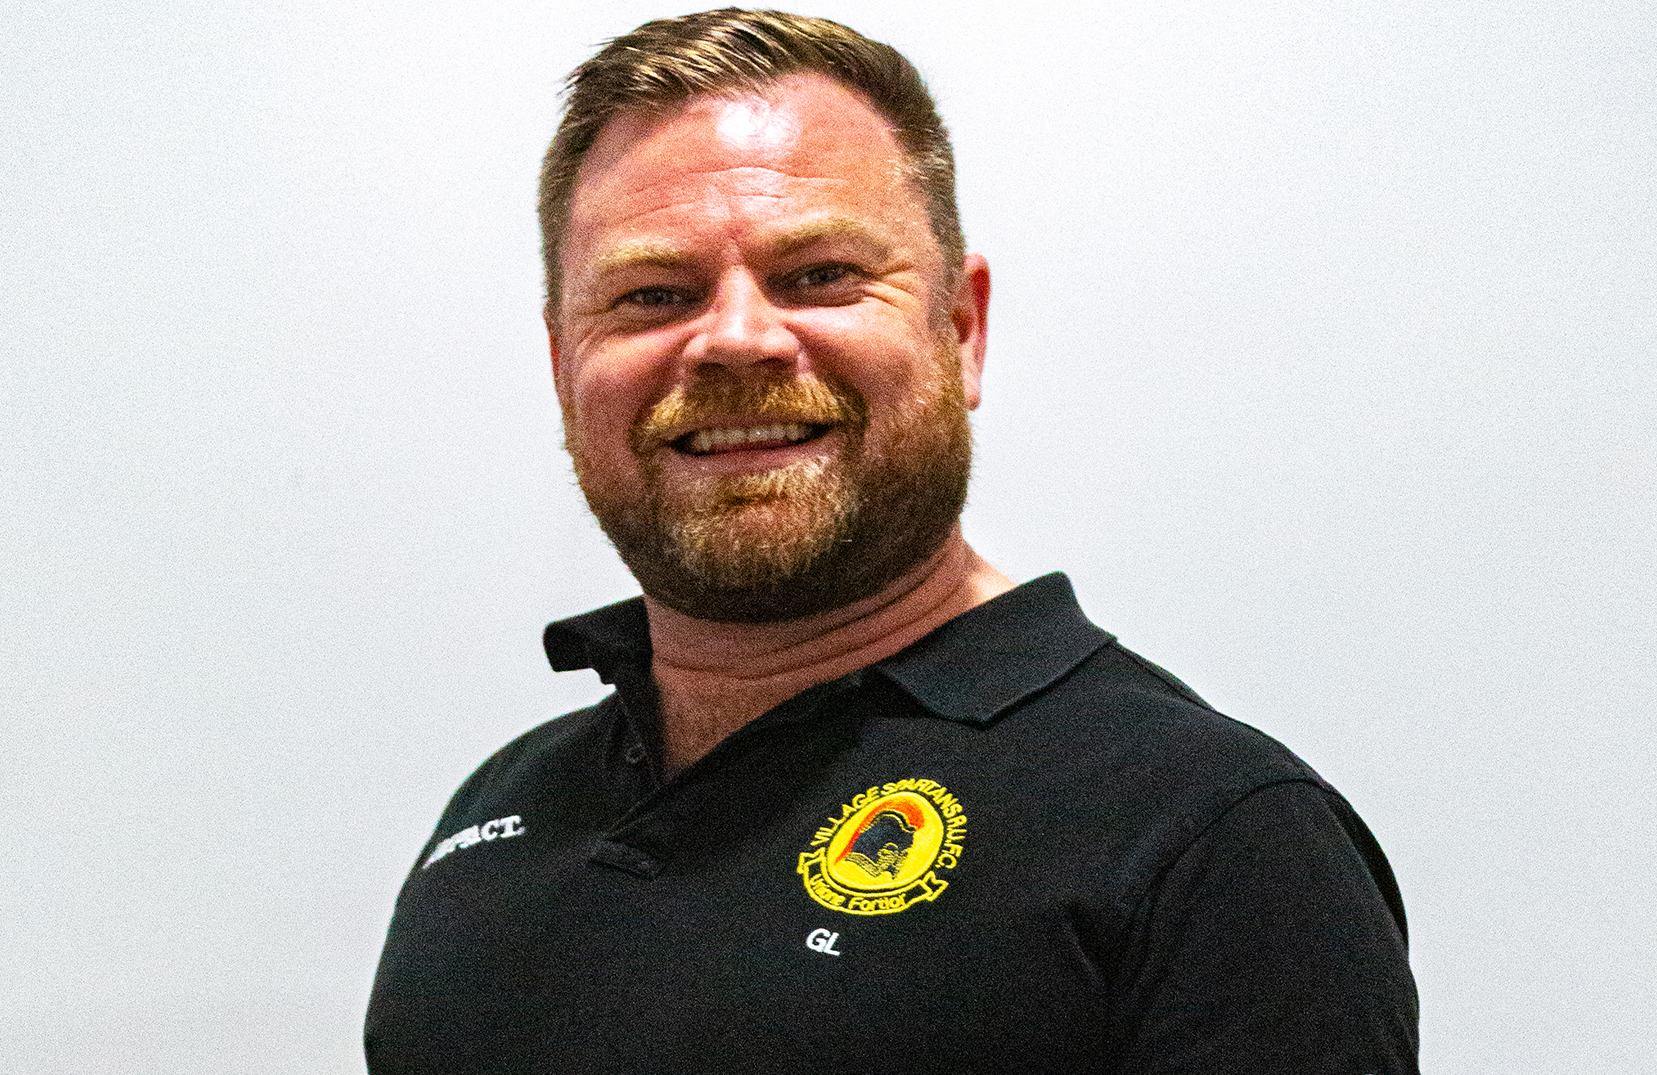 Gareth-Longley-Manchester Village Spartans - Inclusive Rugby - Gay Rugby